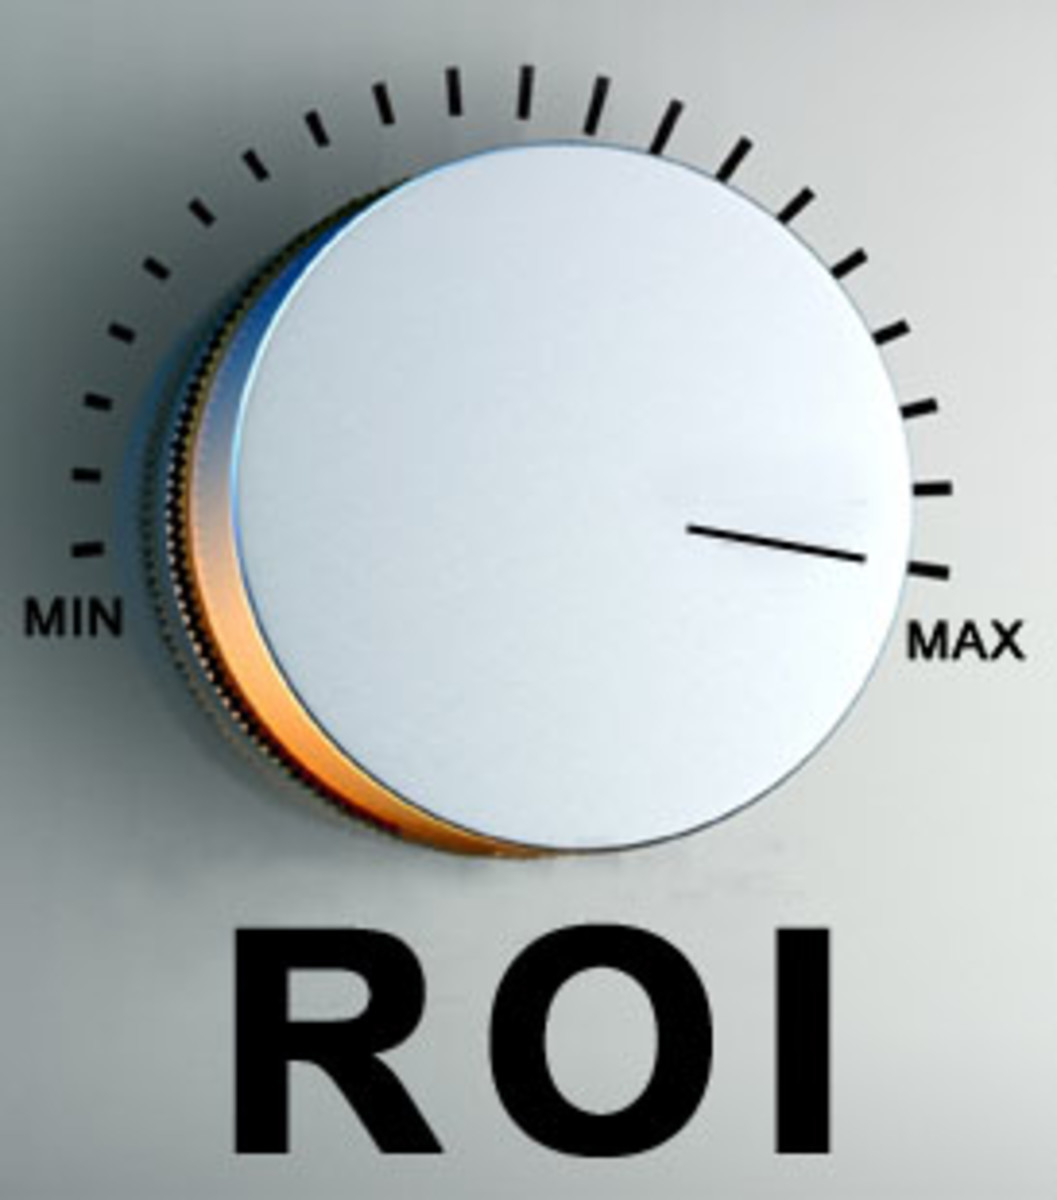 visual of ROI knob with min and max